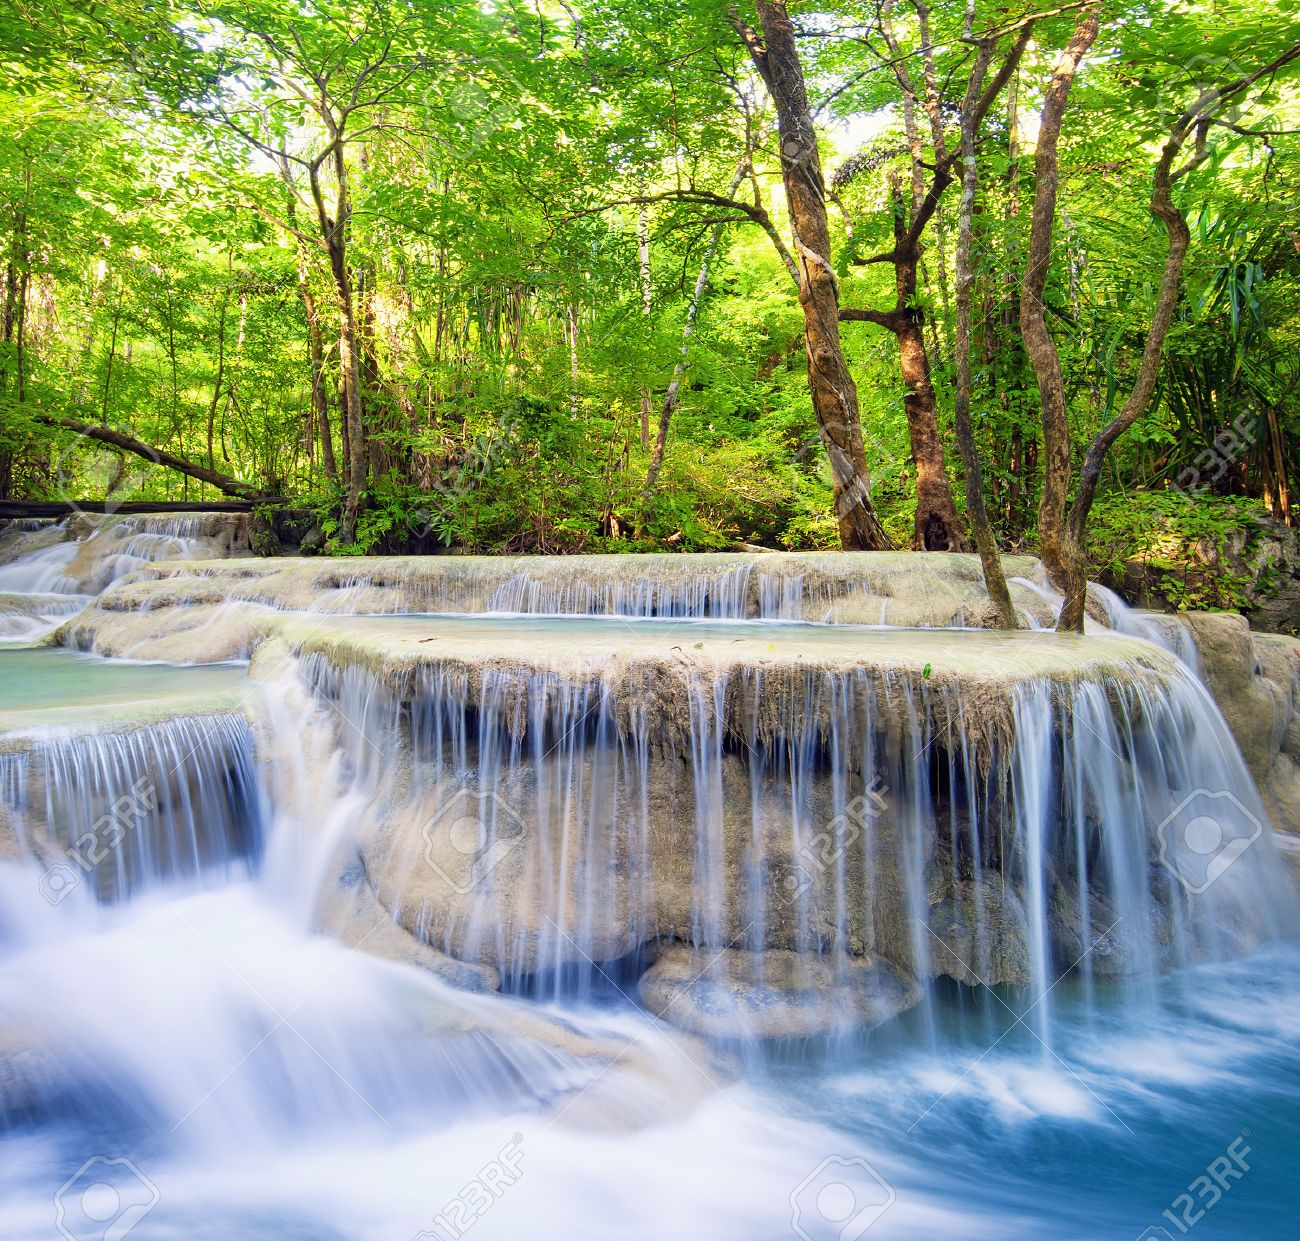 Waterfall Landscape Background Beautiful Nature Outdoor Photography Stock Photo Picture And Royalty Free Image Image 29488031